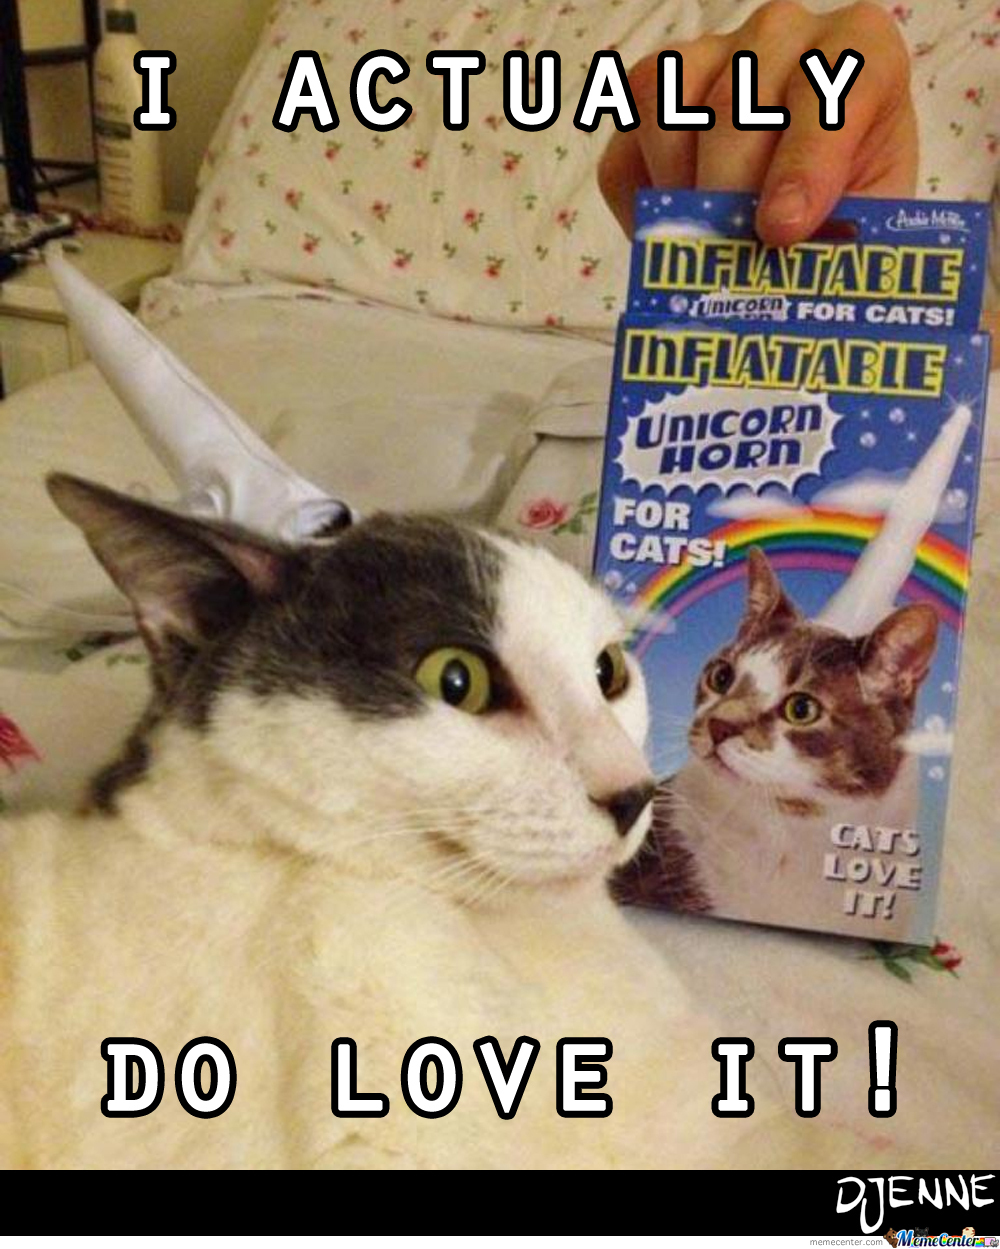 Inflatable Cat Unicorn Horn!